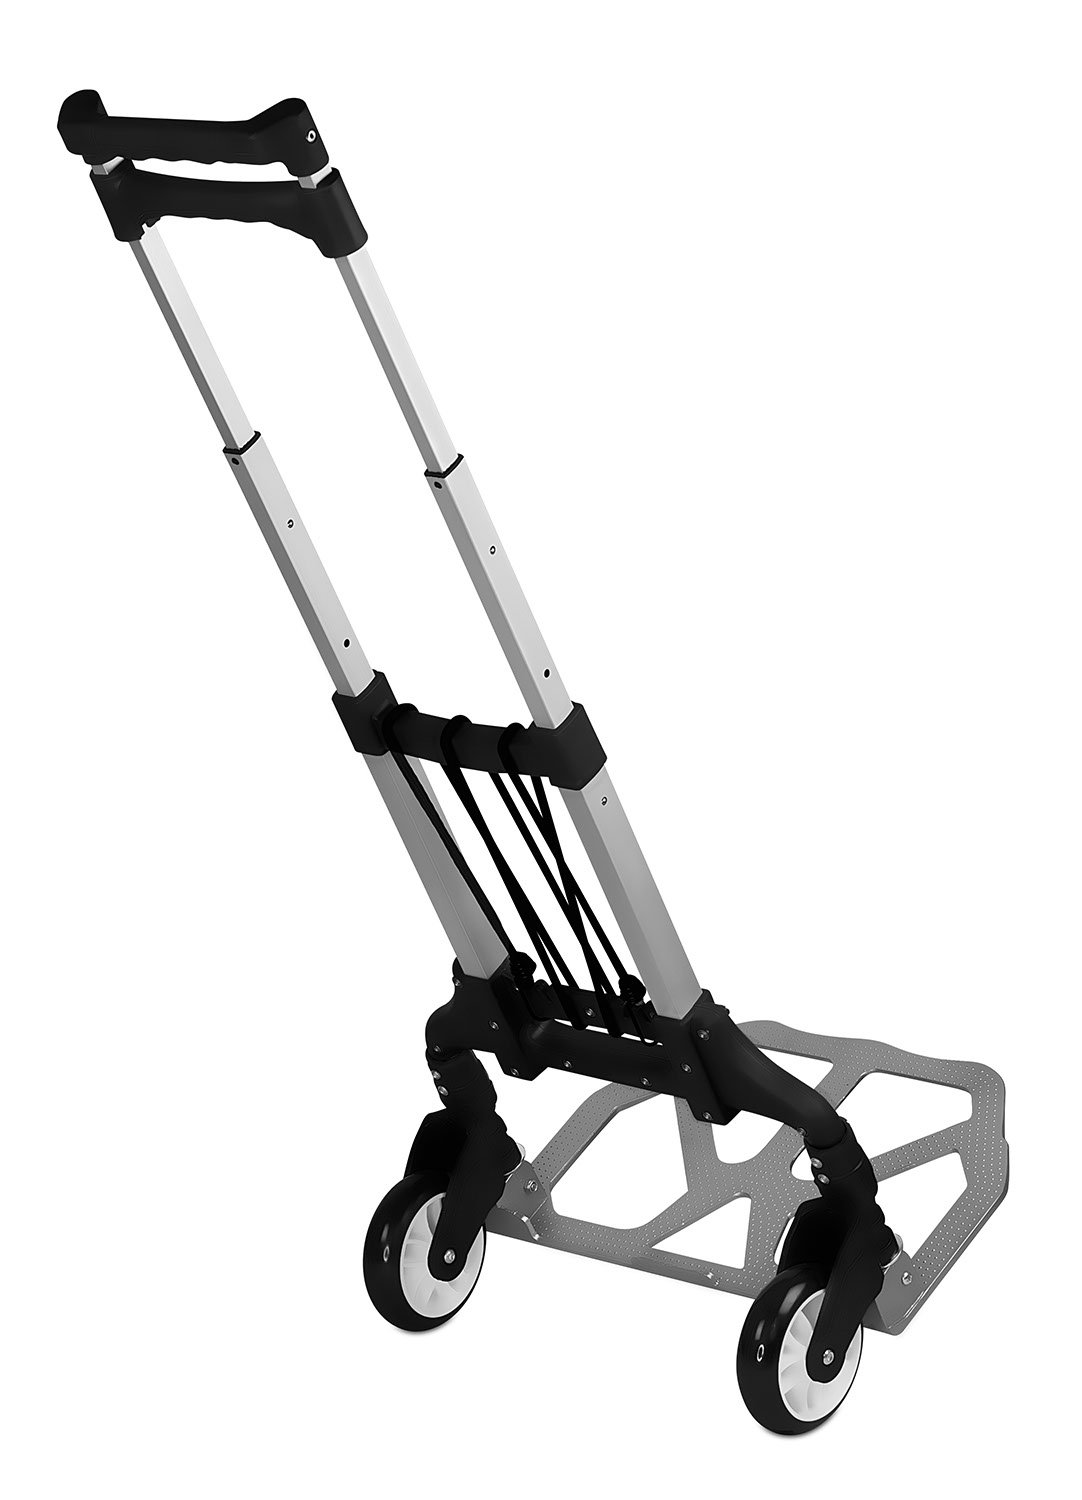 Mount-It! Folding Hand Truck and Dolly, 165 Lb Capacity Heavy-Duty Luggage Trolley Cart With Telescoping Handle and Rubber Wheels